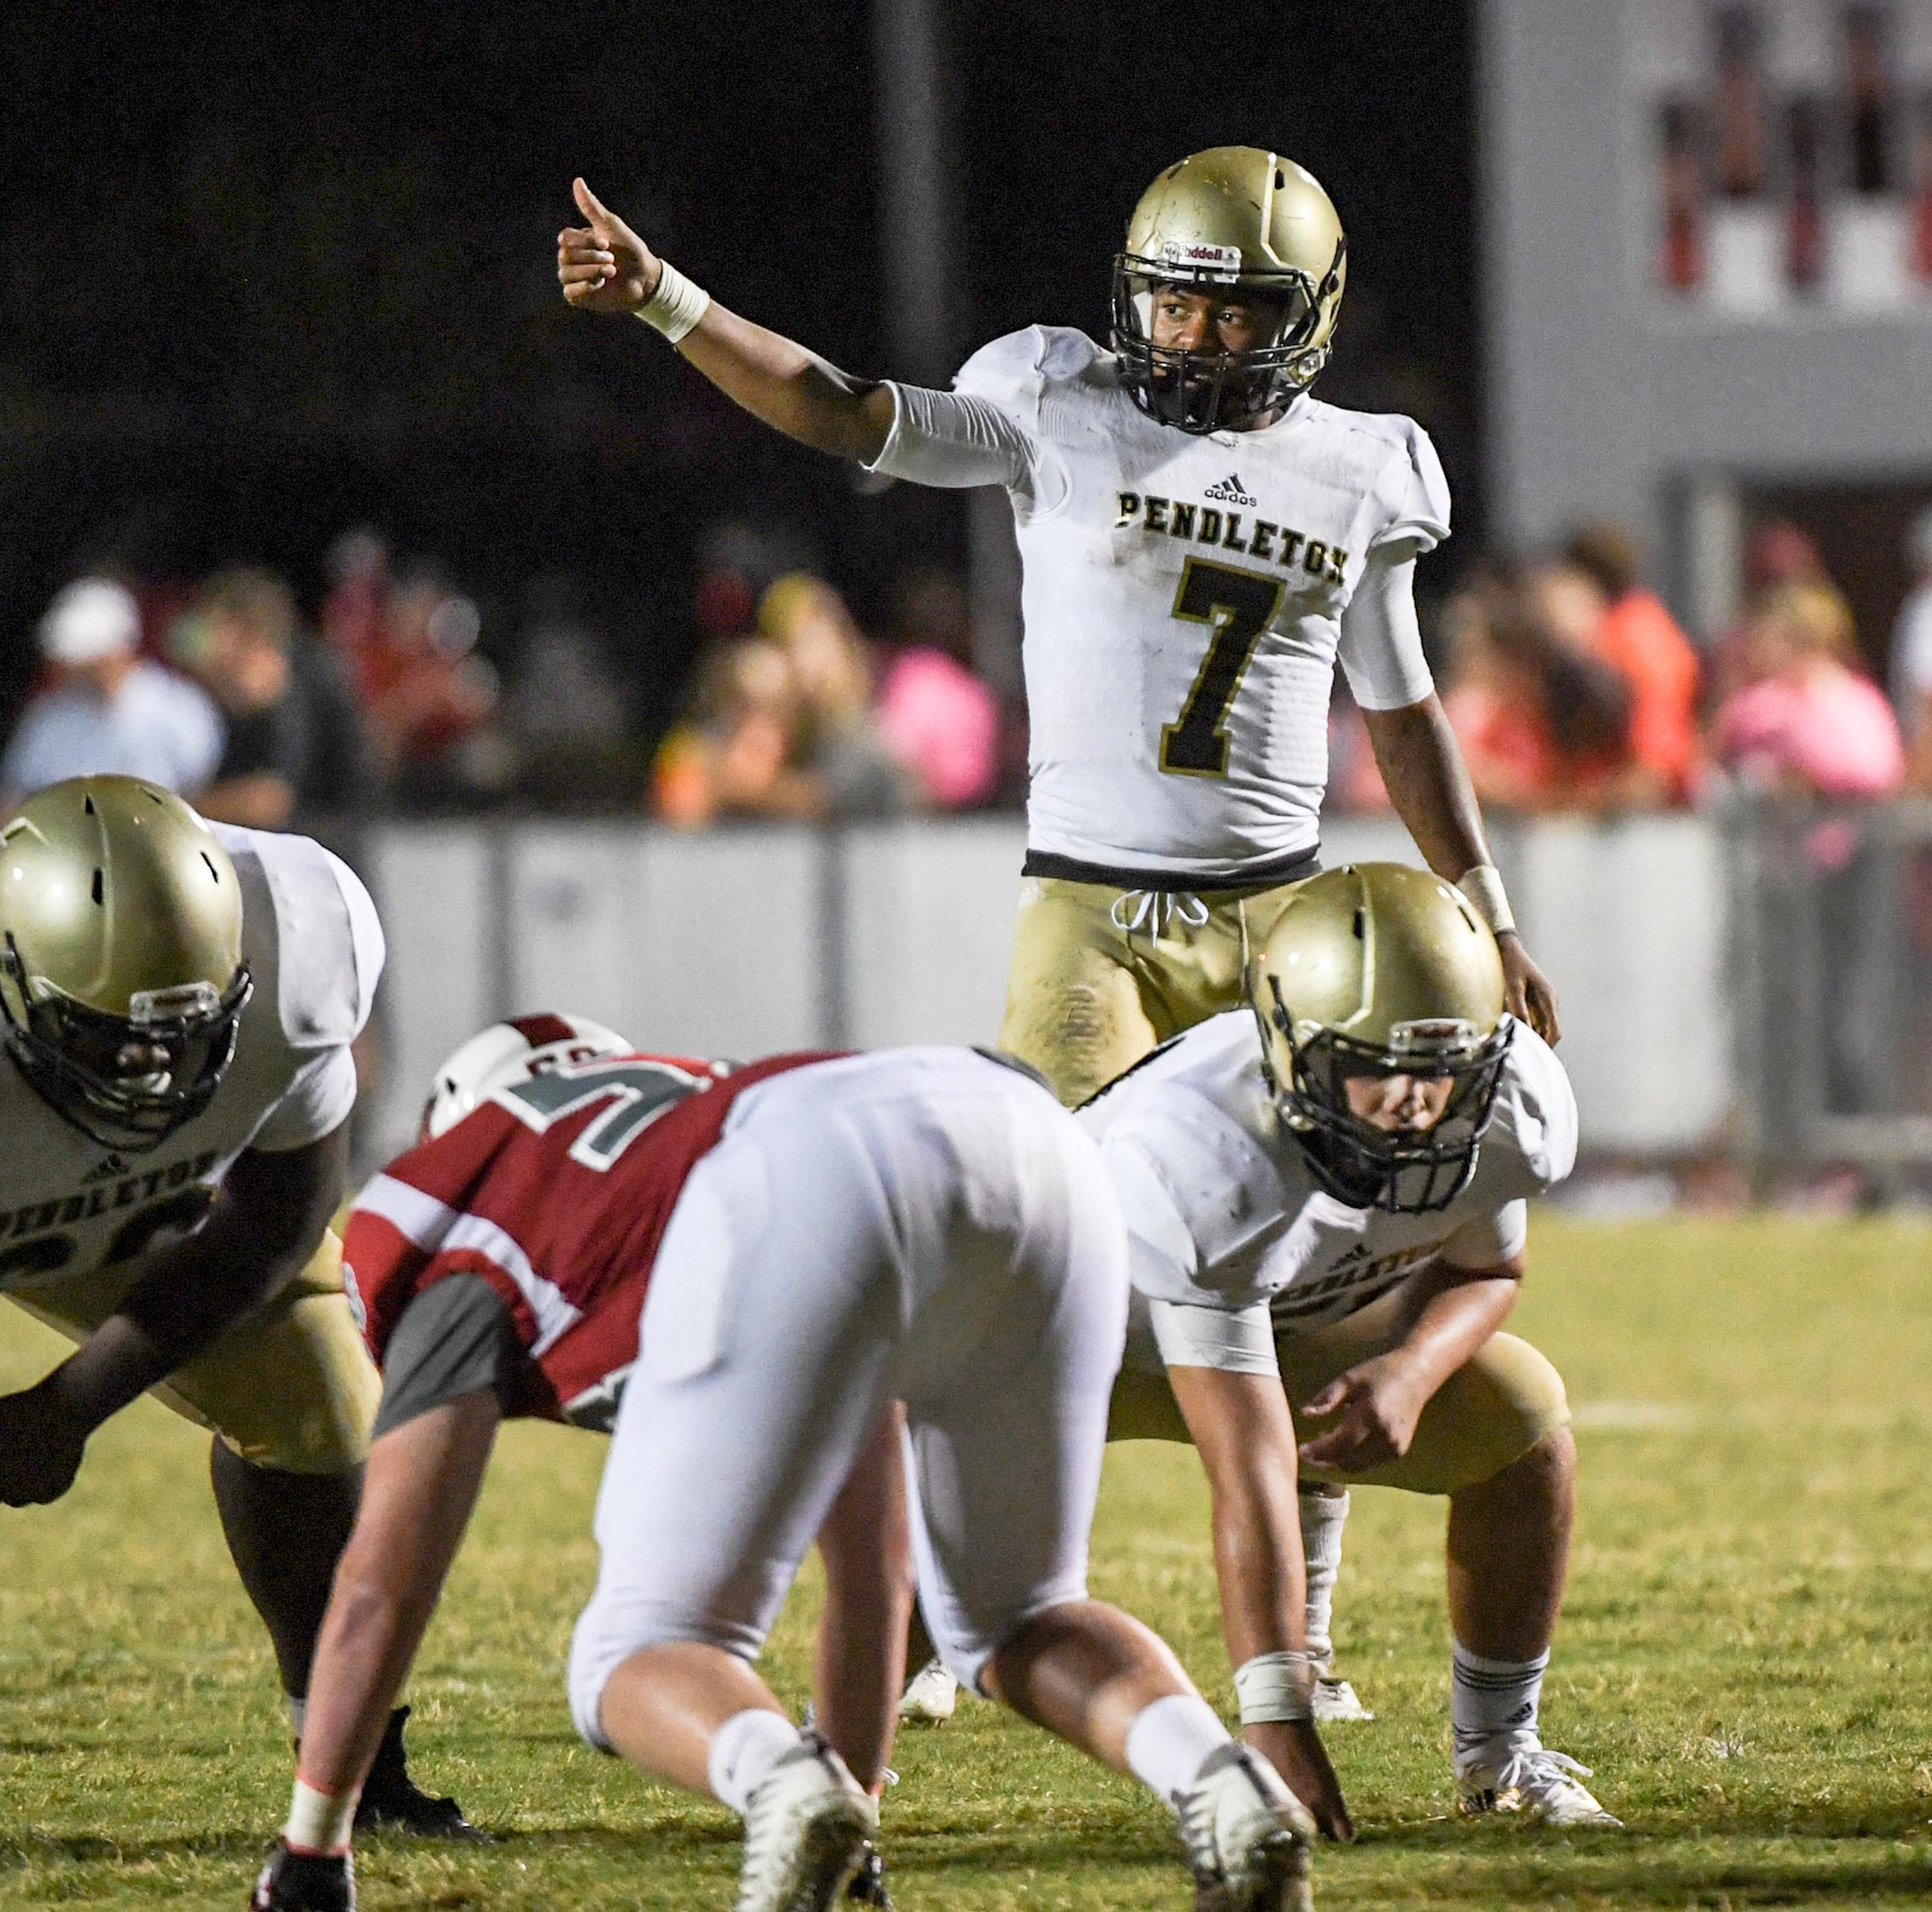 Get caught up on Week 6 high school football stats and standings for the Anderson area